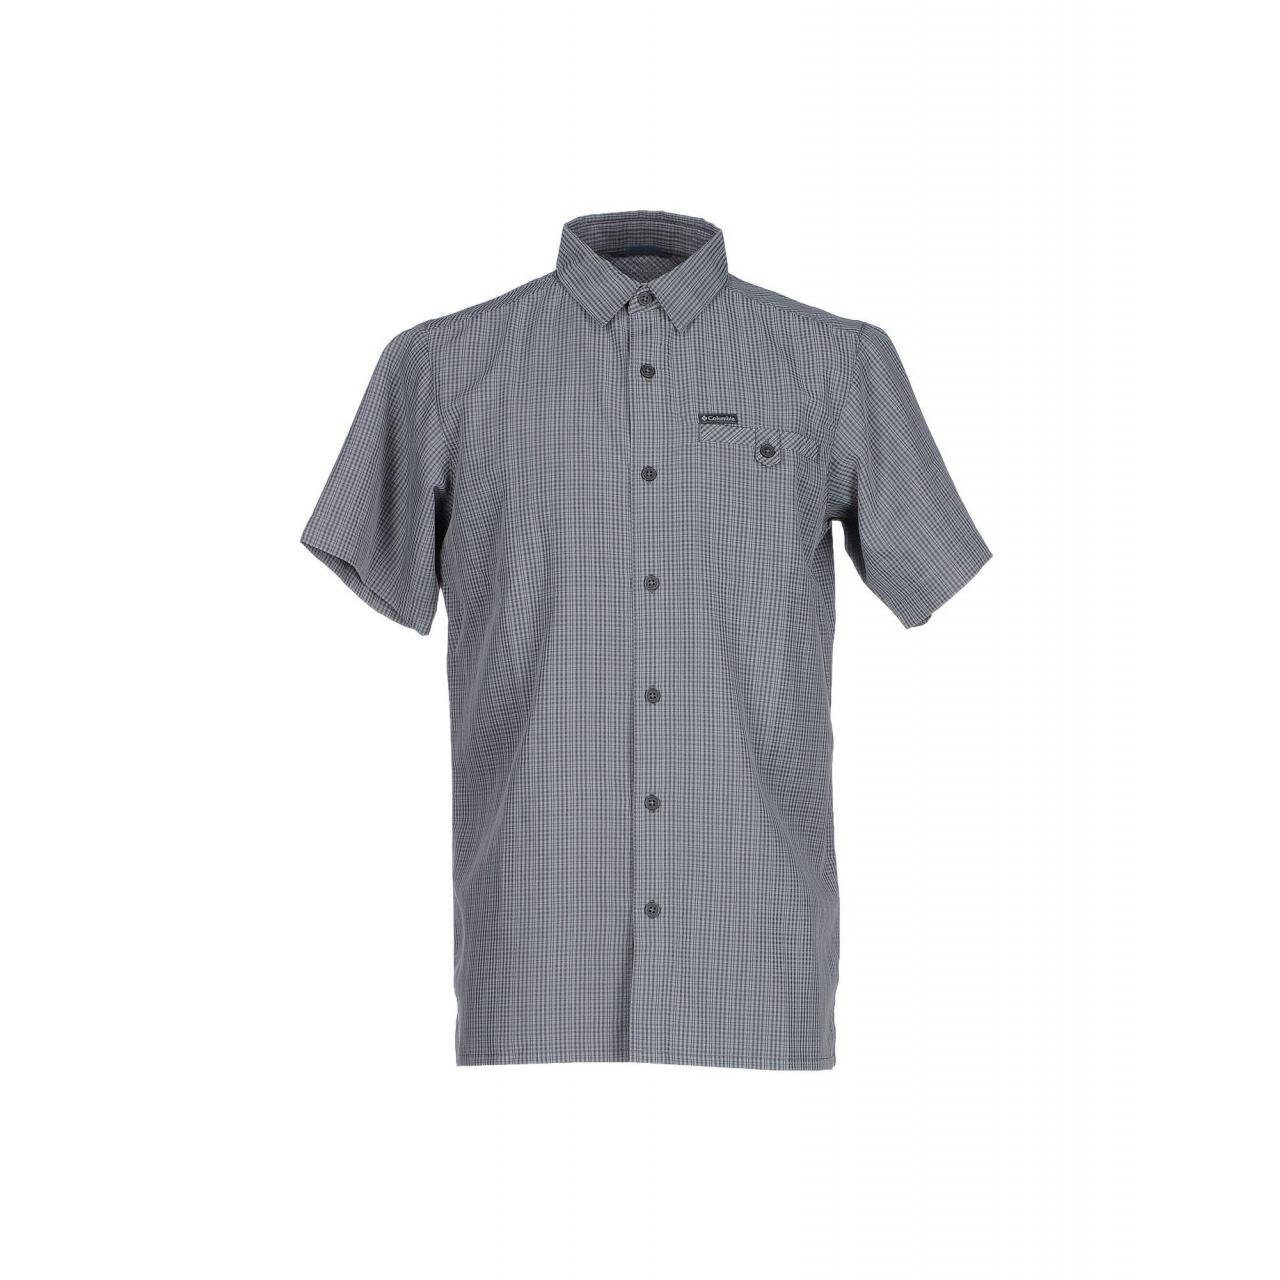 Buy cheap COLUMBIA men Shirts Shirt Military green,columbia apparel online sale,Outlet on Sale from wholesalers